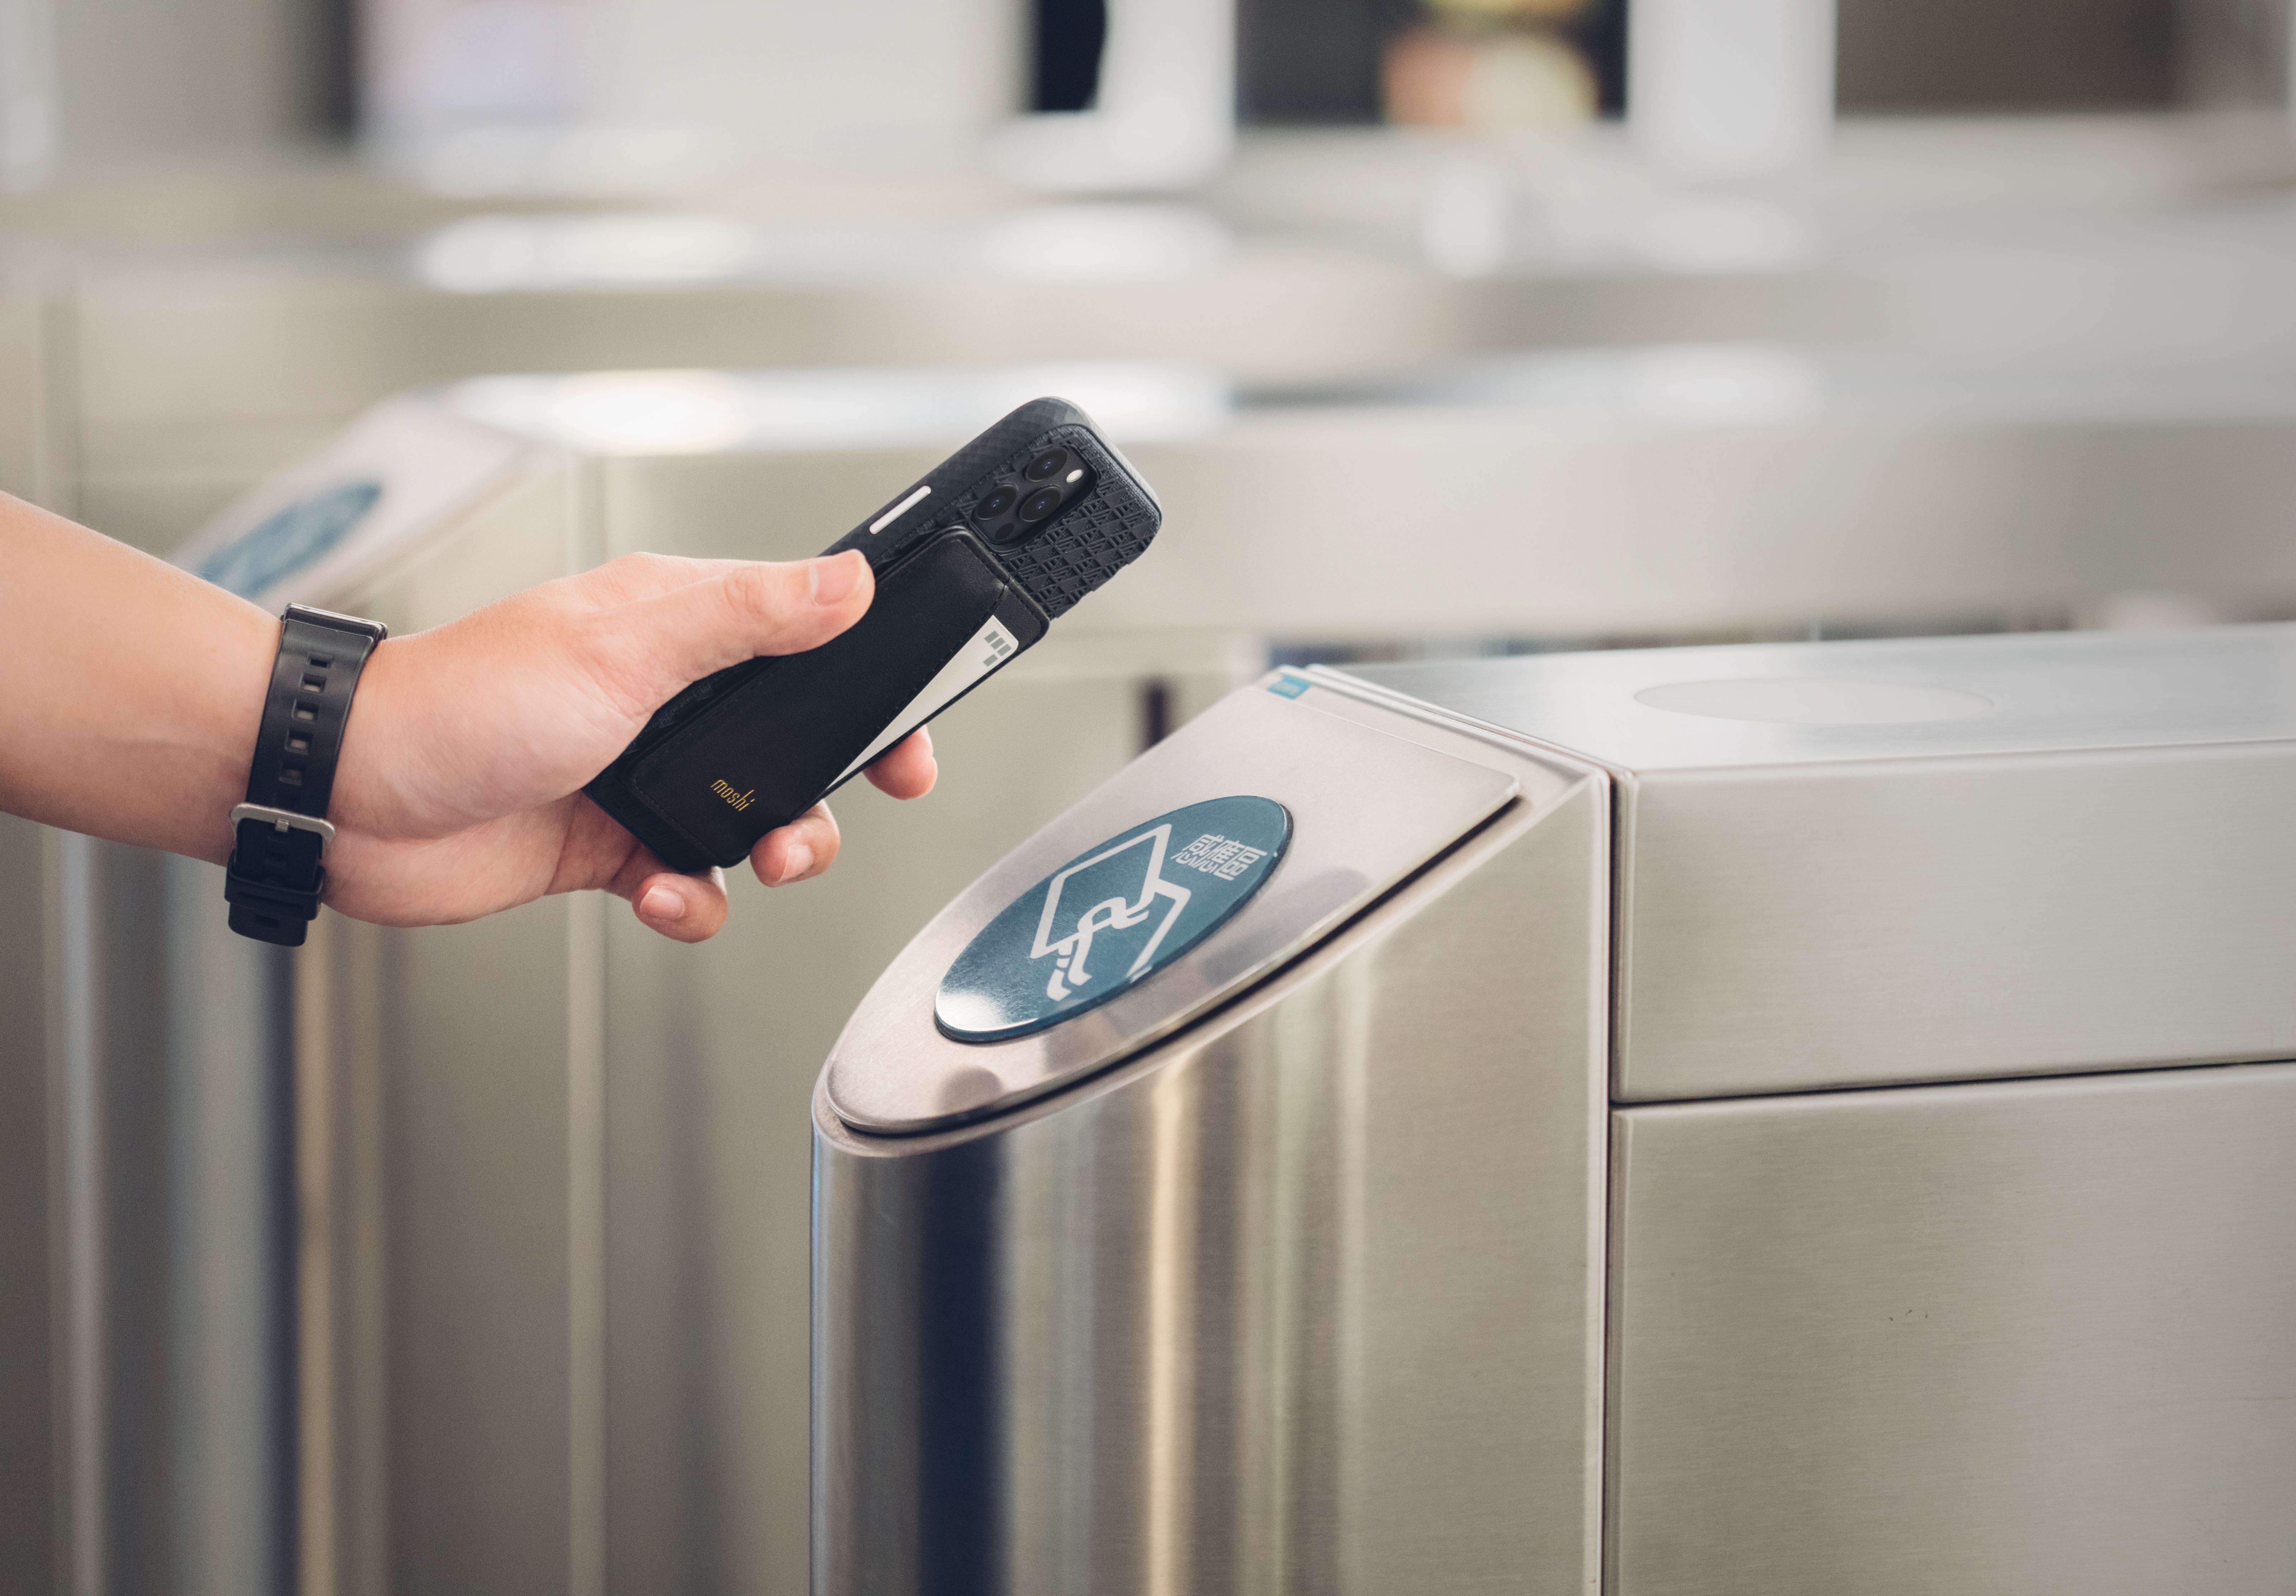 A Moshi SnapTo Slim Wallet attached to a phone and containing and office access card. The card is being scanned on the entry gates at an office